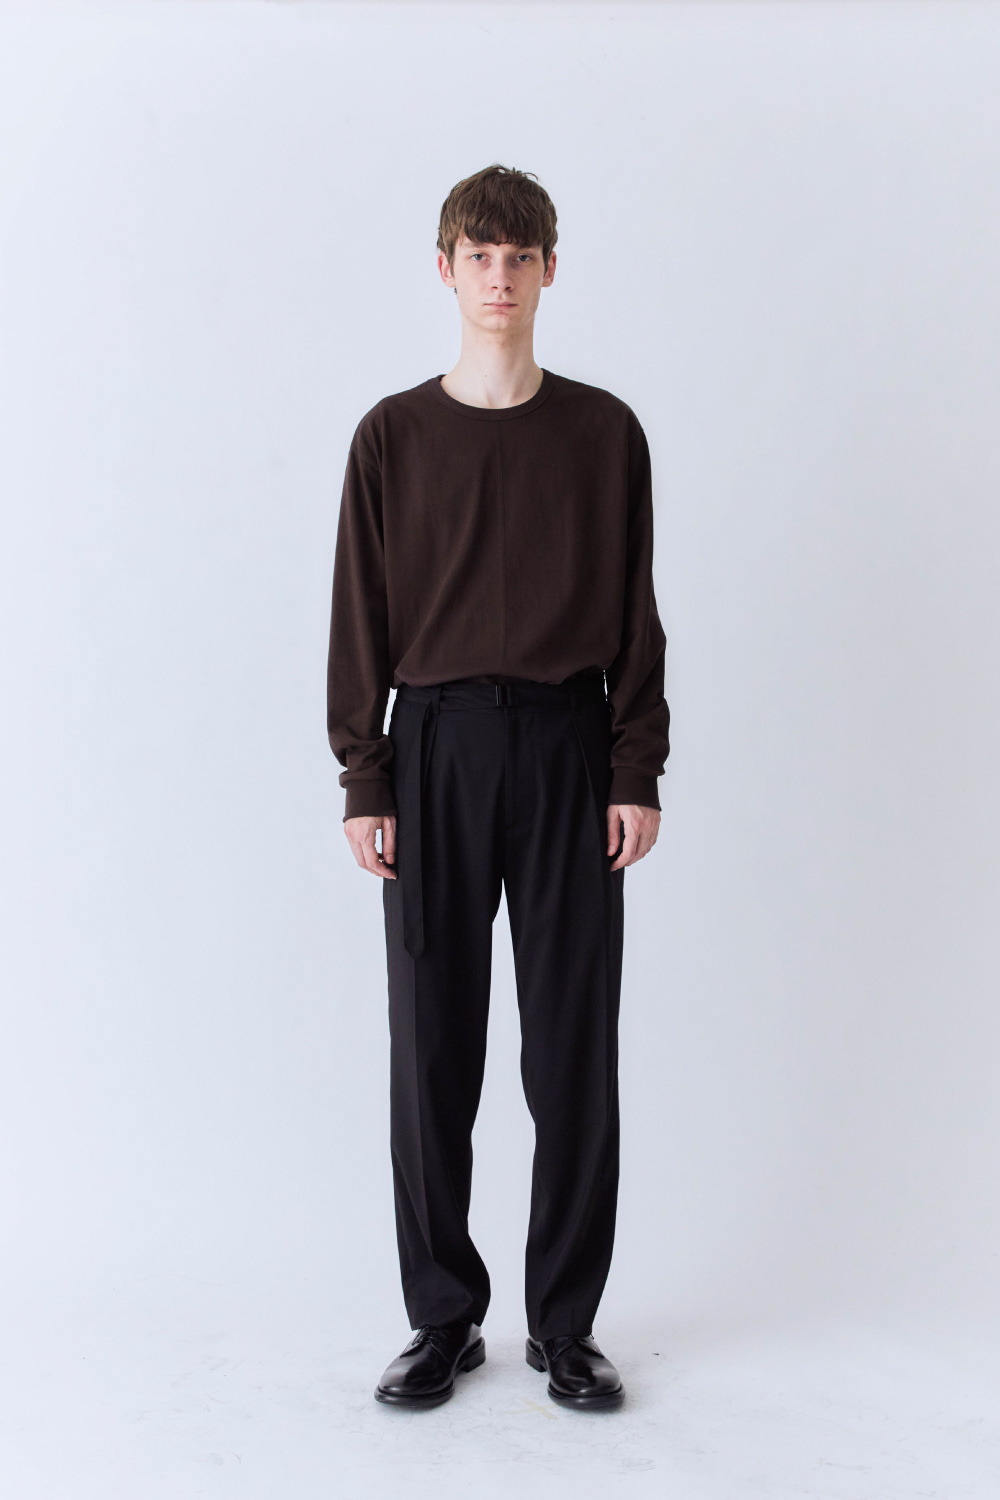 OURSCOPE아워스코프 Belted Crease Pants (Black)